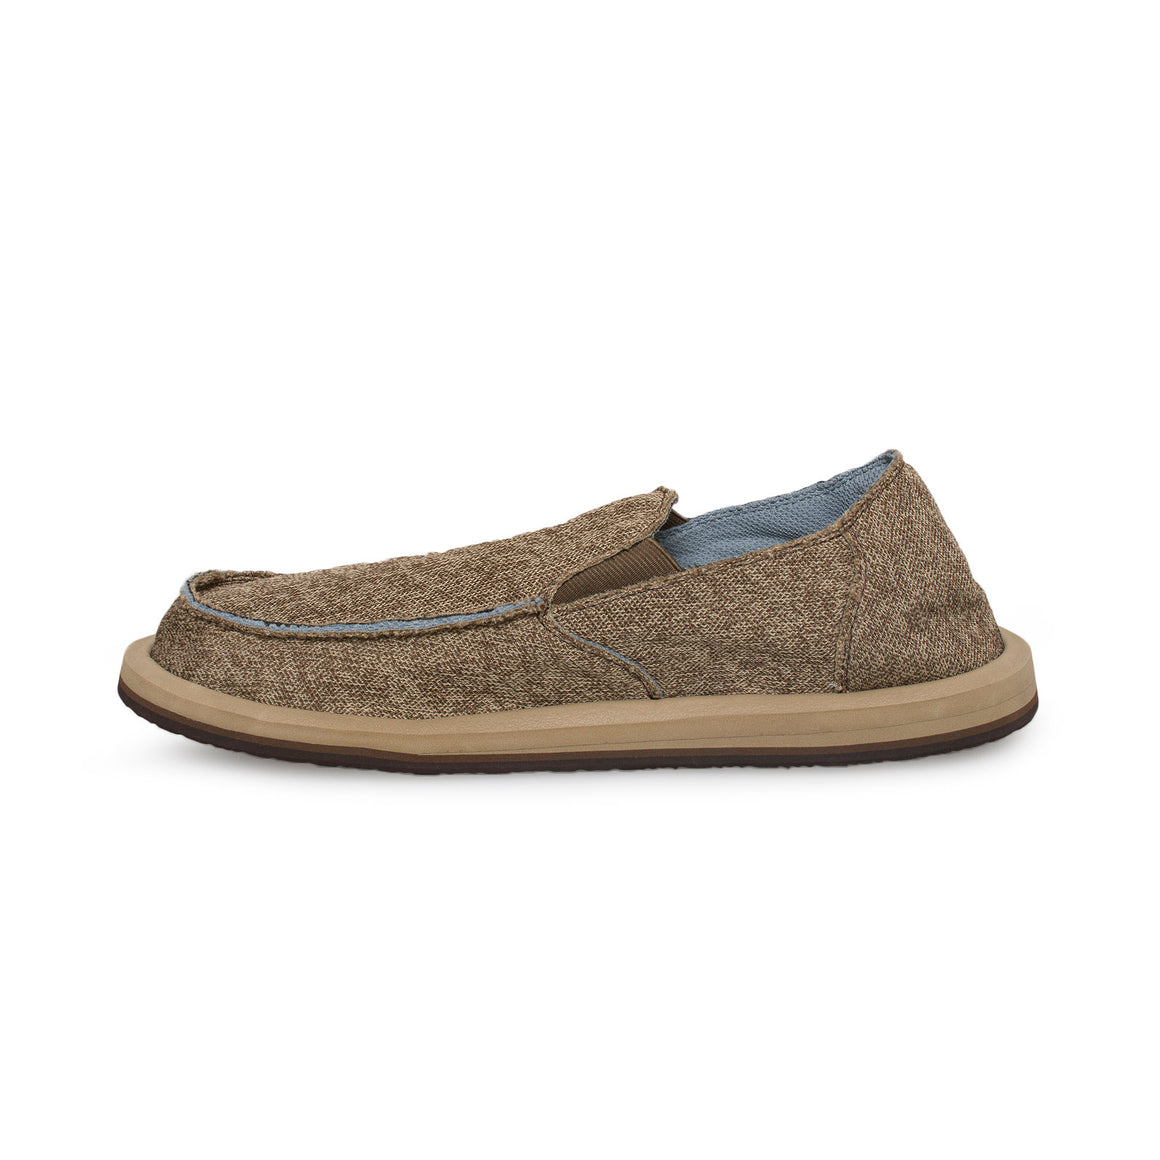 Sanuk Vagabond Mesh Brown Shoes - Men's